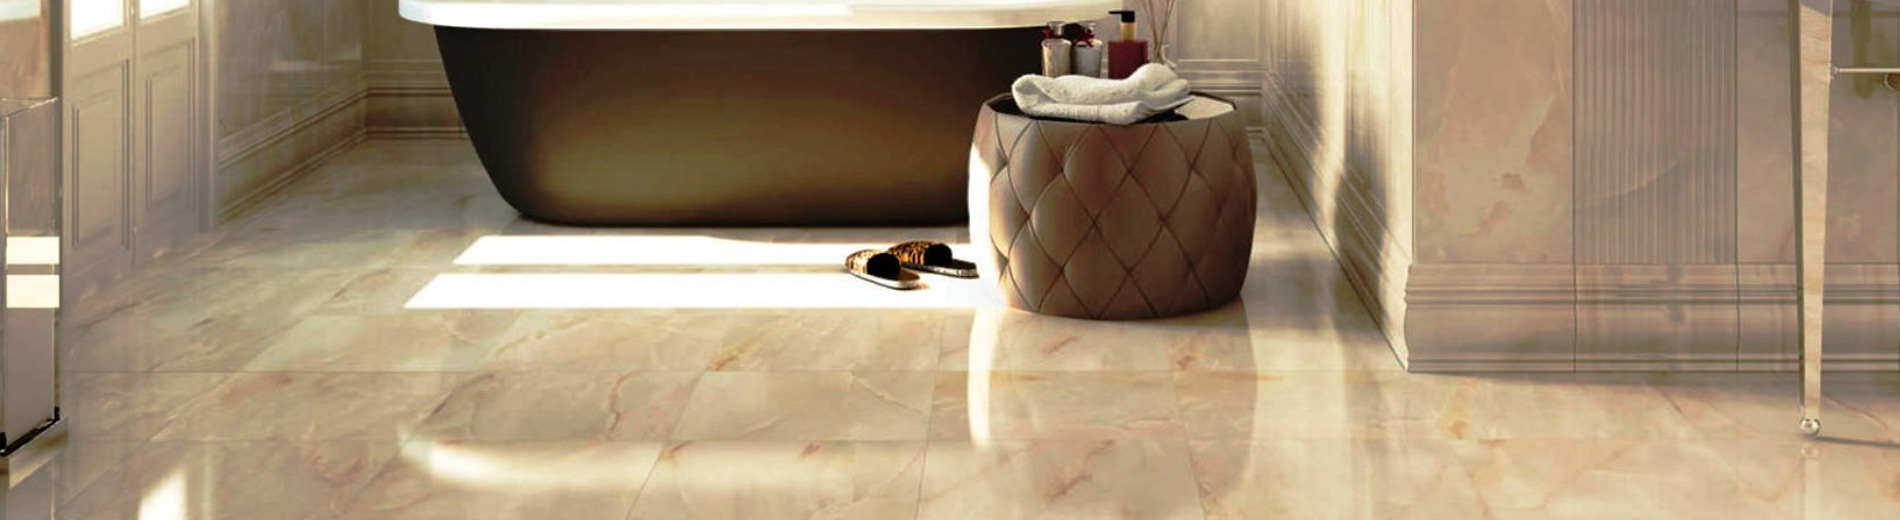 Tile Cleaning Adelaide | Tile and Grout Cleaning Adelaide